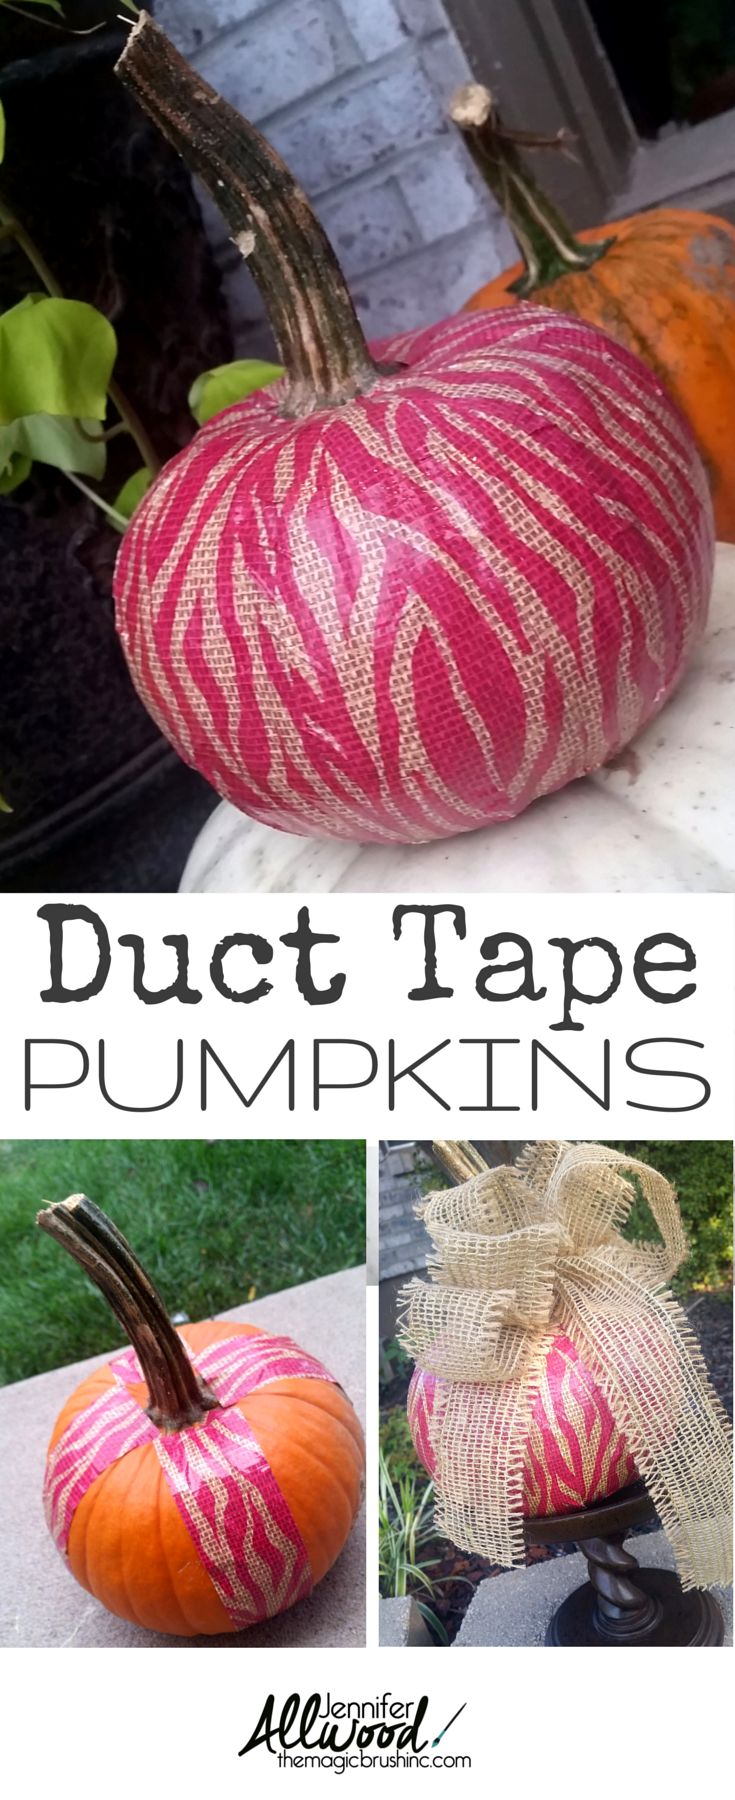 Duct Tape a pumpkin for a fun fall & Halloween decoration! more DIY projects at theMagicBrushinc.com